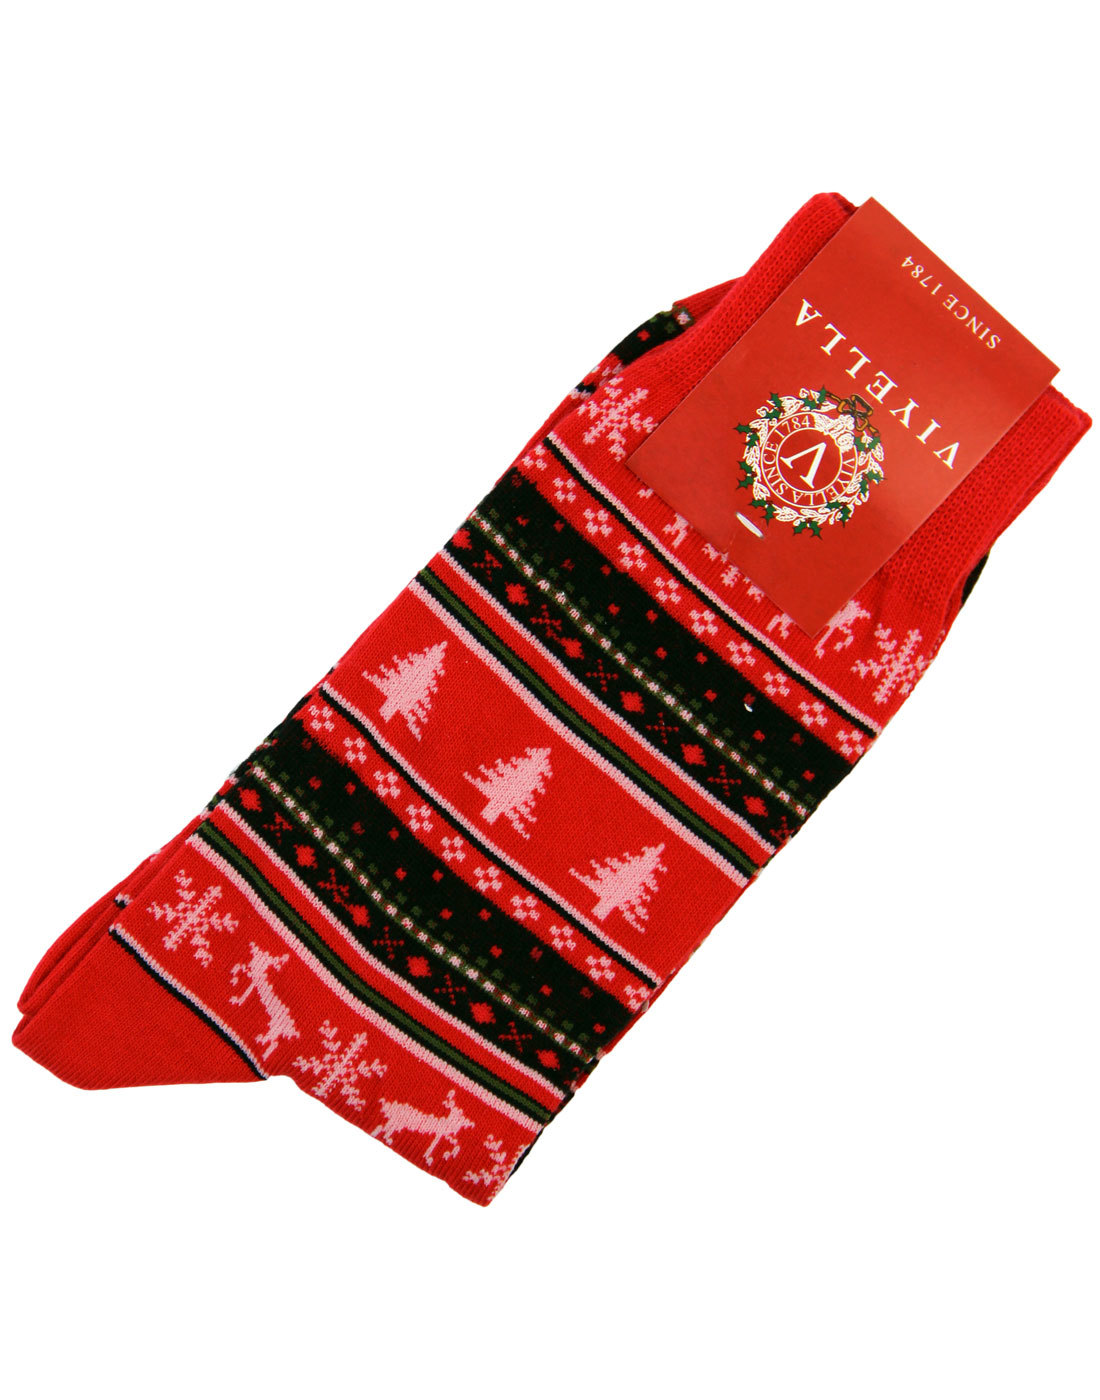 + Christmas Fairisle VIYELLA Retro Christmas Socks